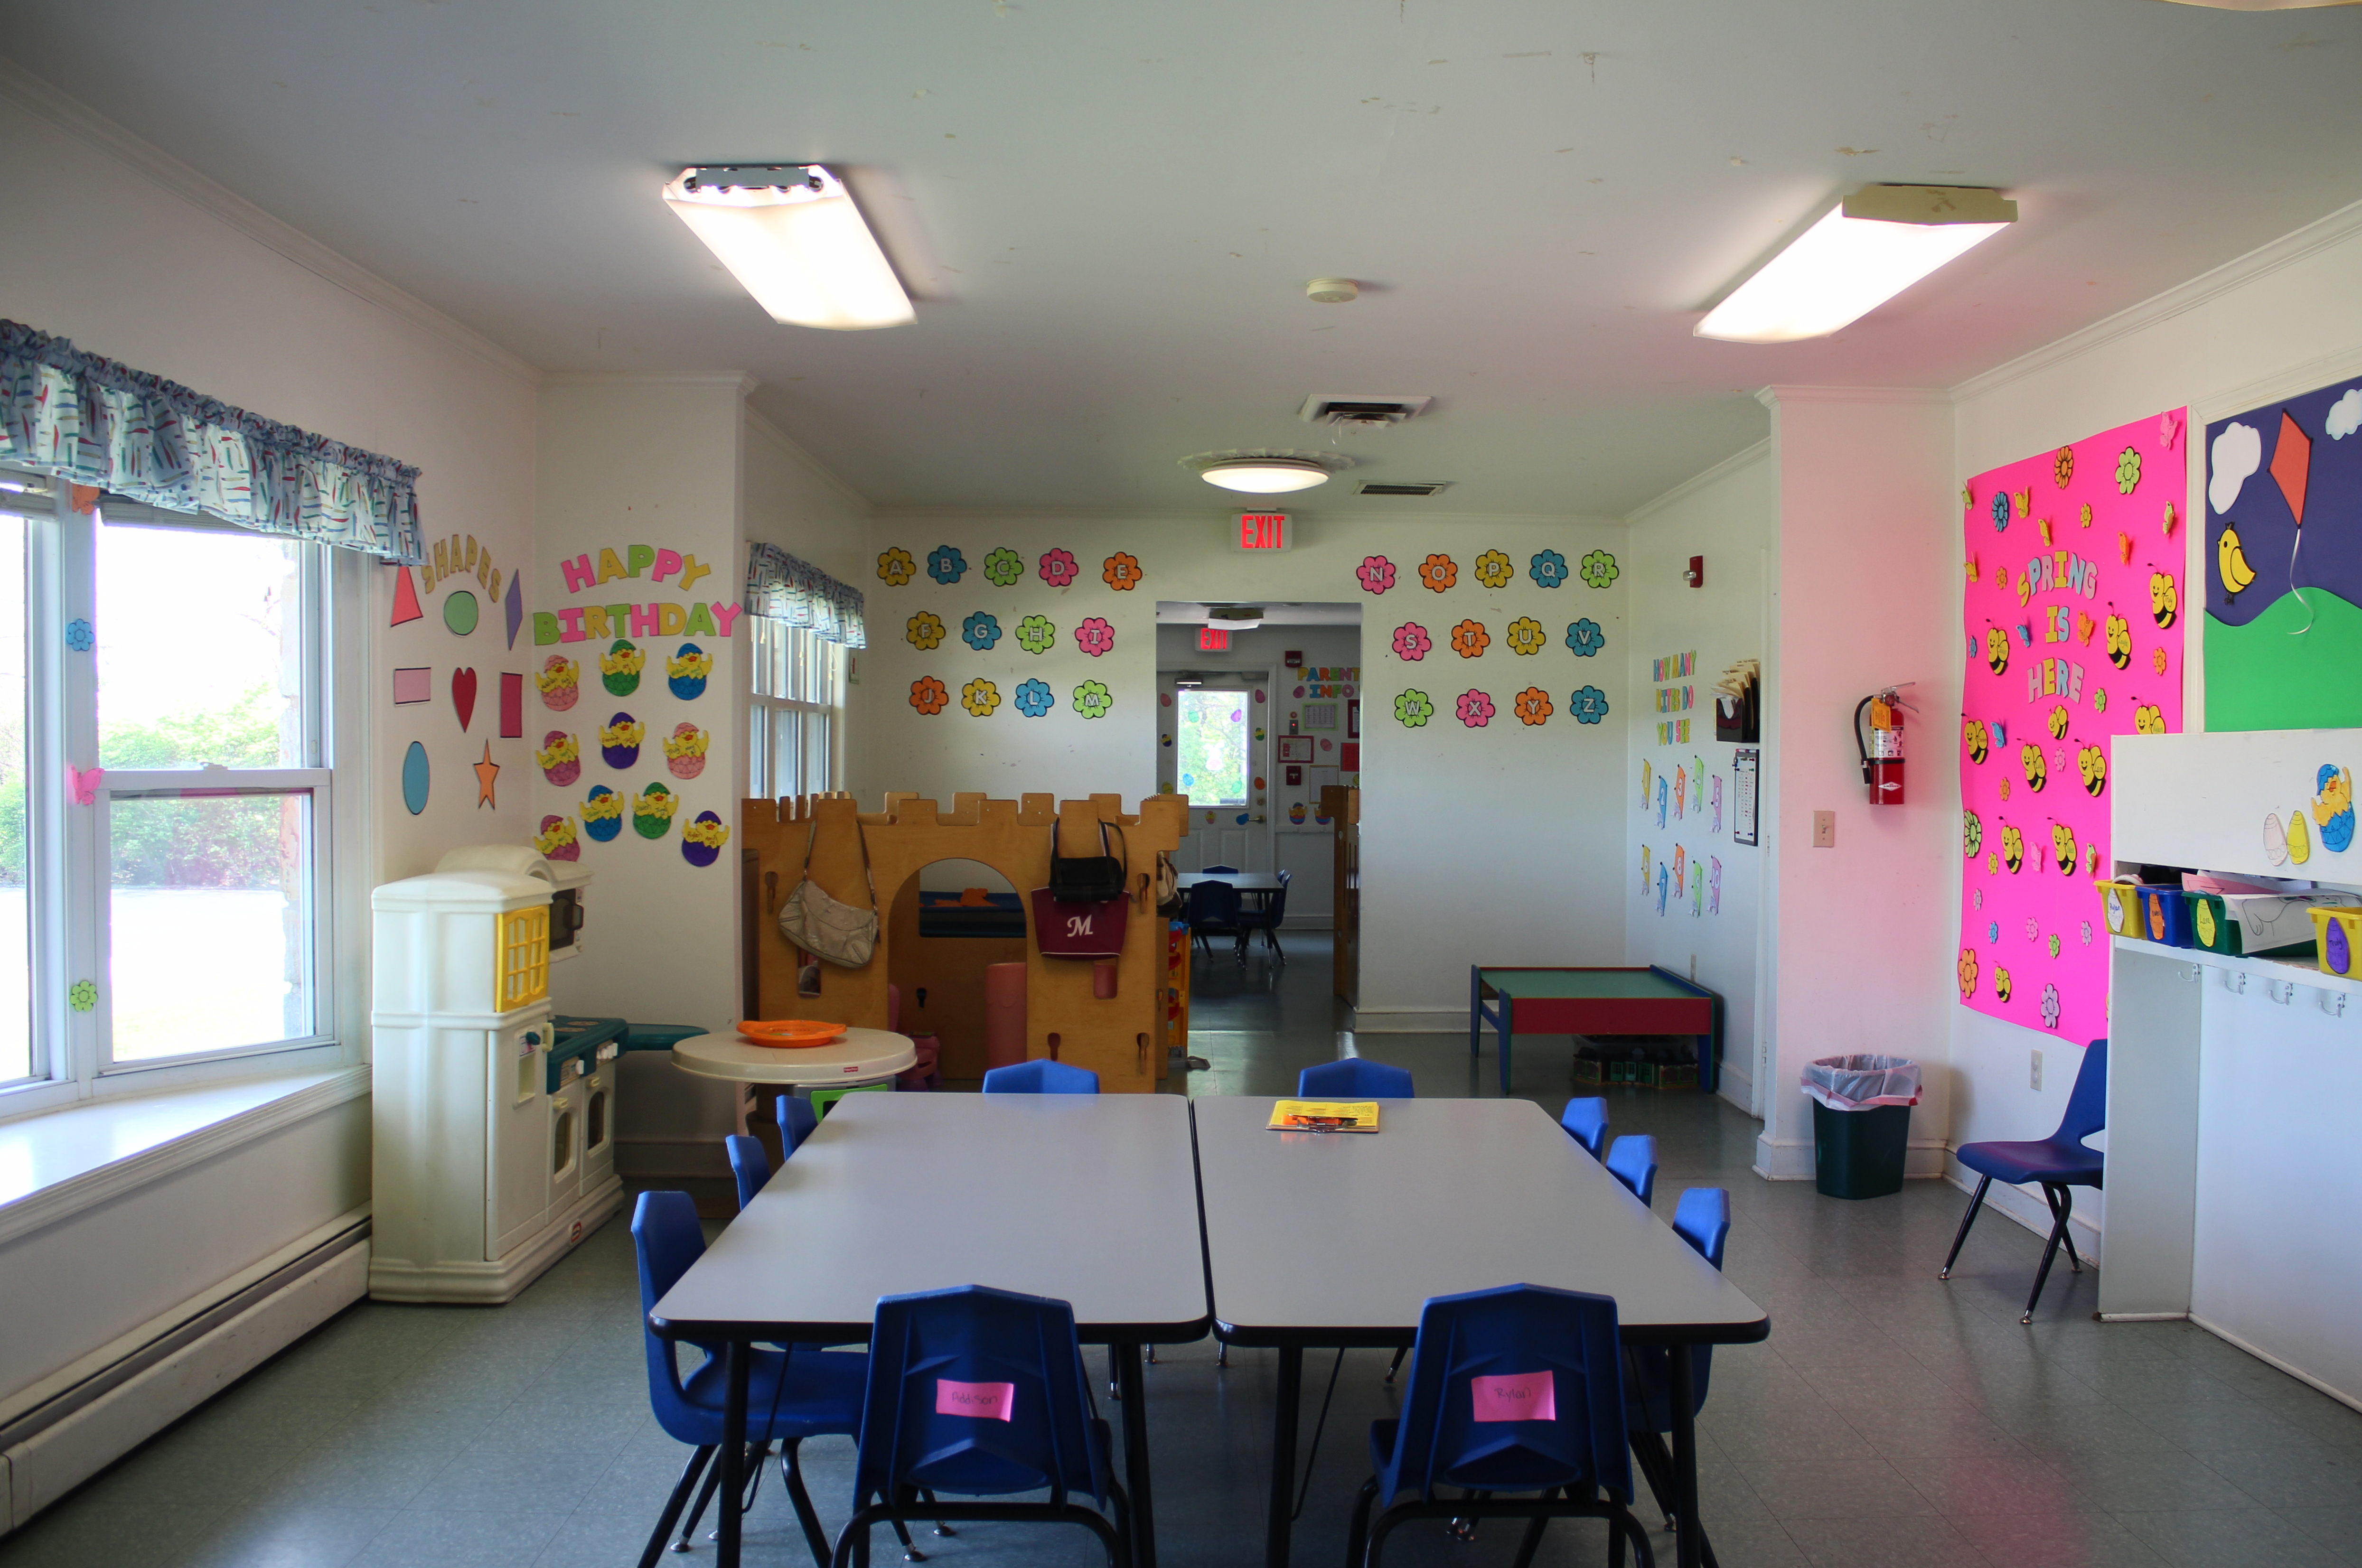 the classroom of Maplewood Childcare Center which has tables, desks, and lots of pictures on the wall.